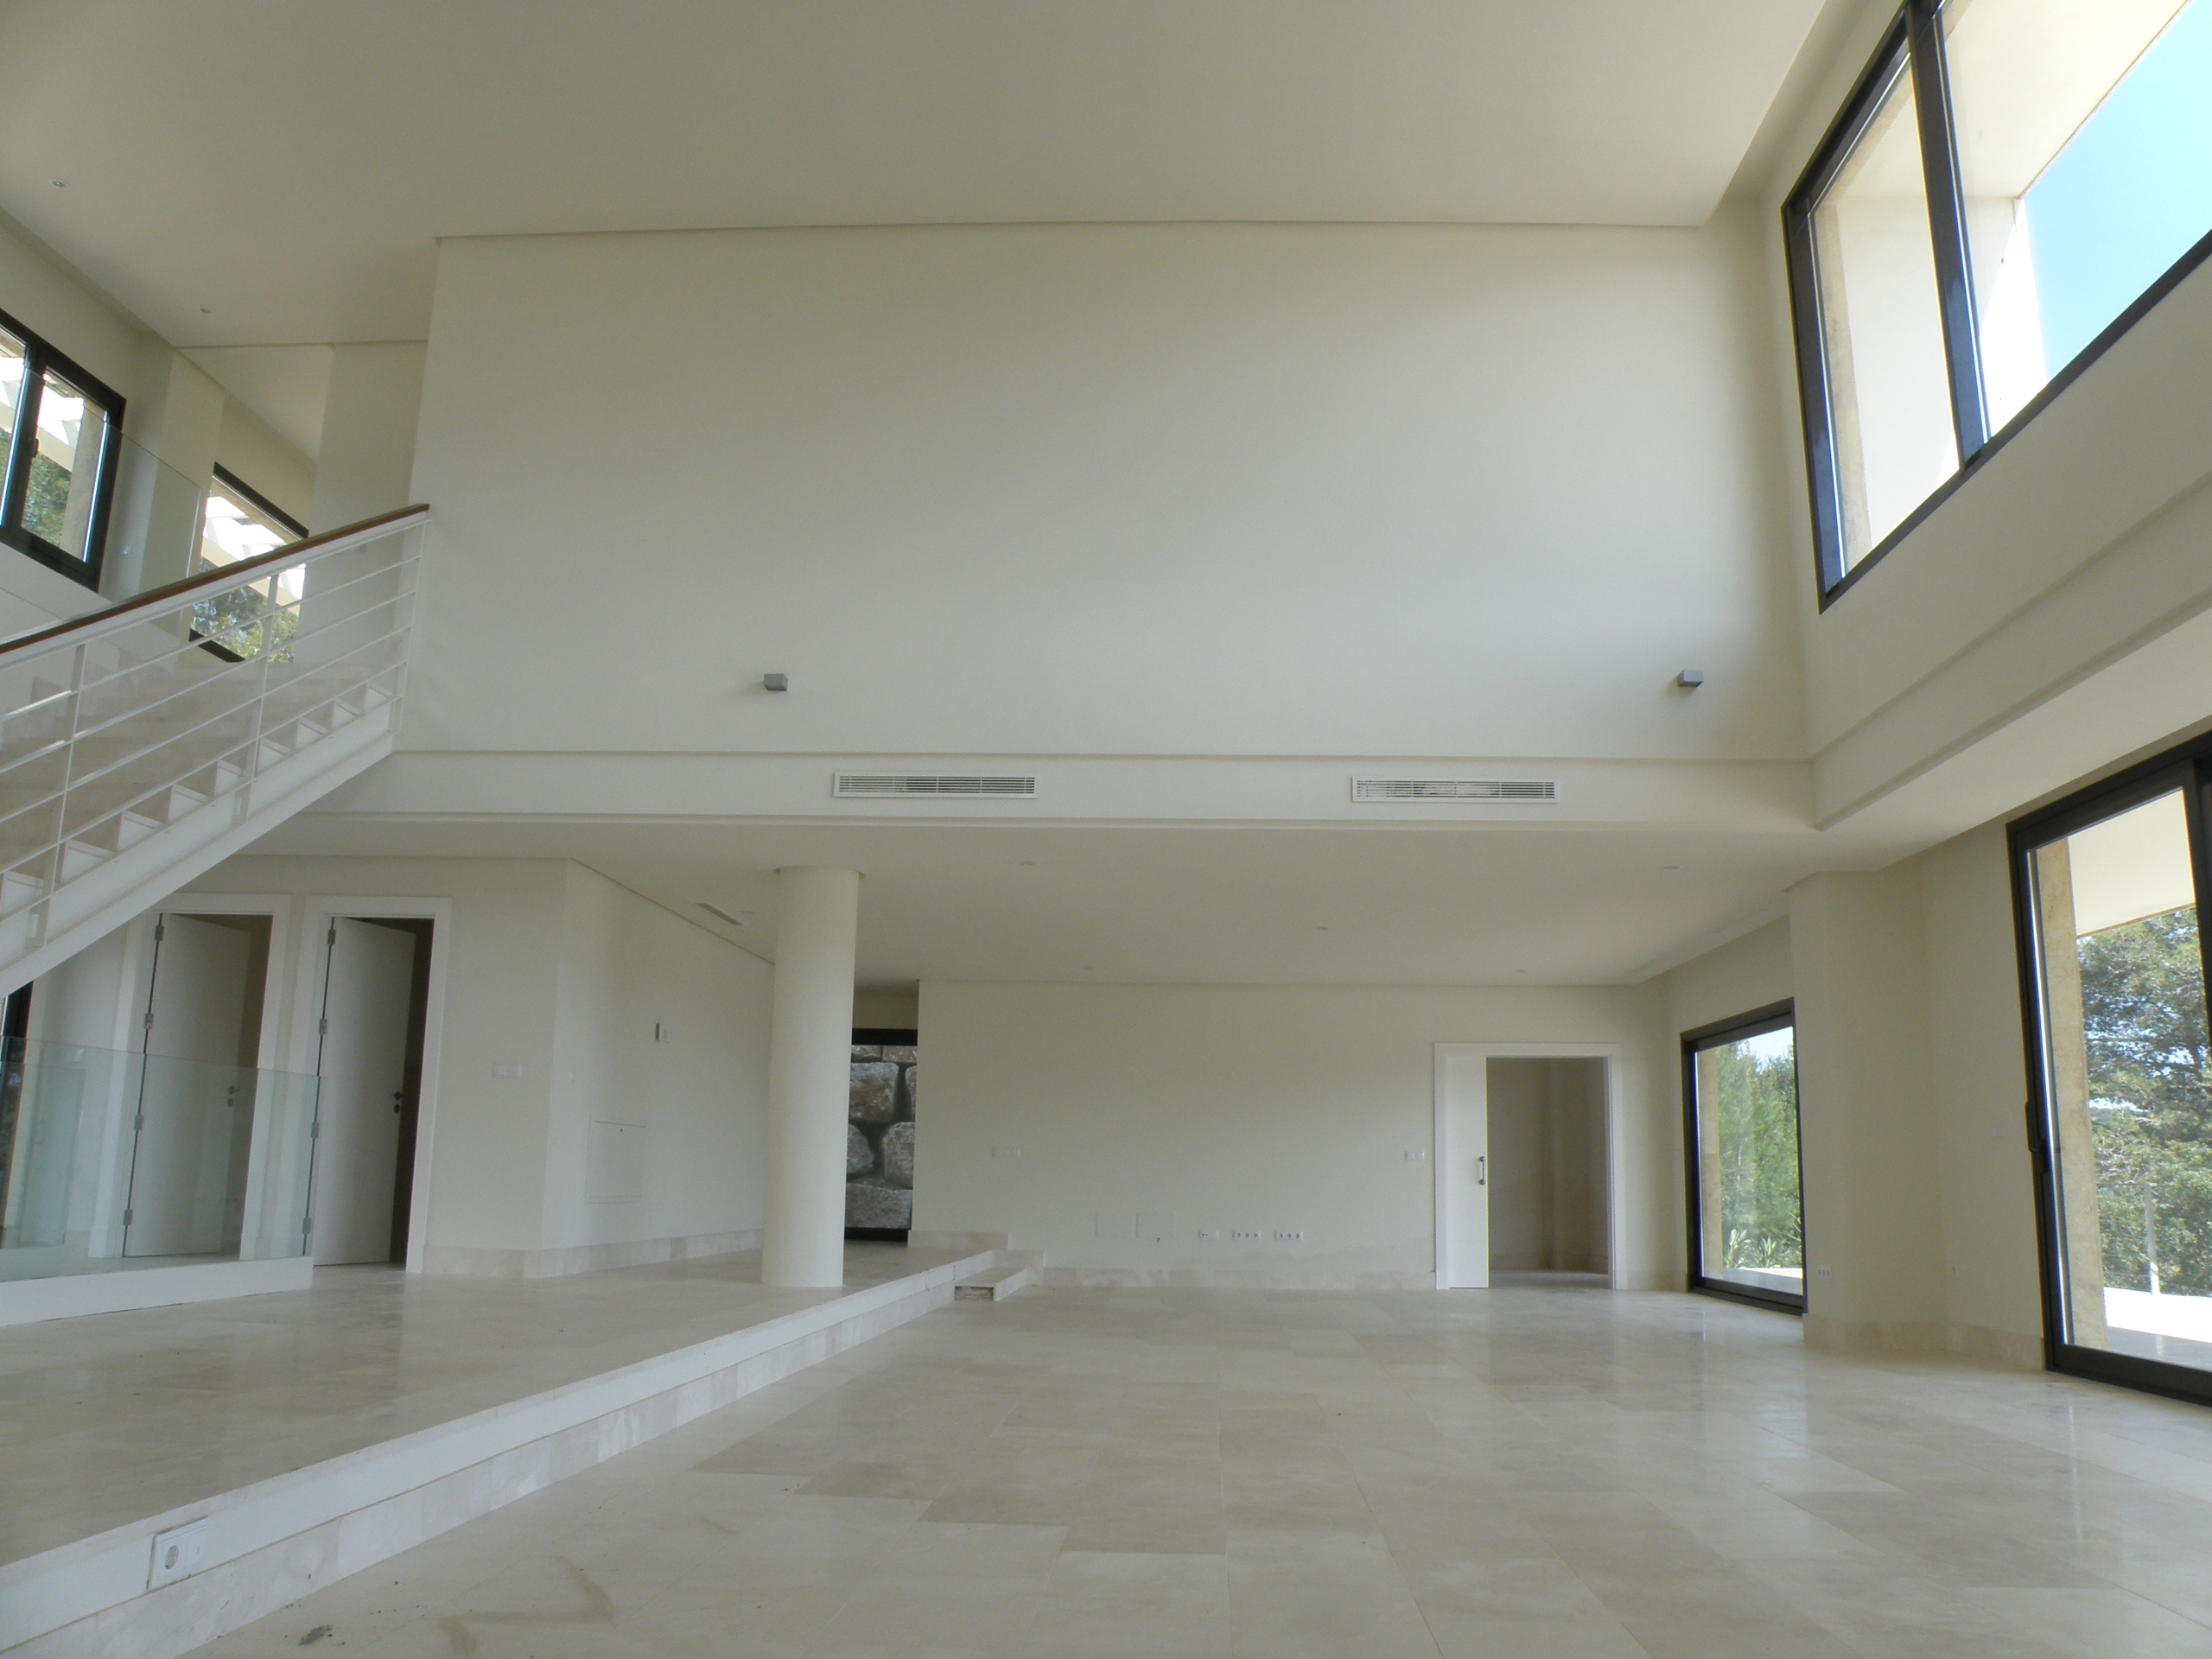 Spacious and bright rooms